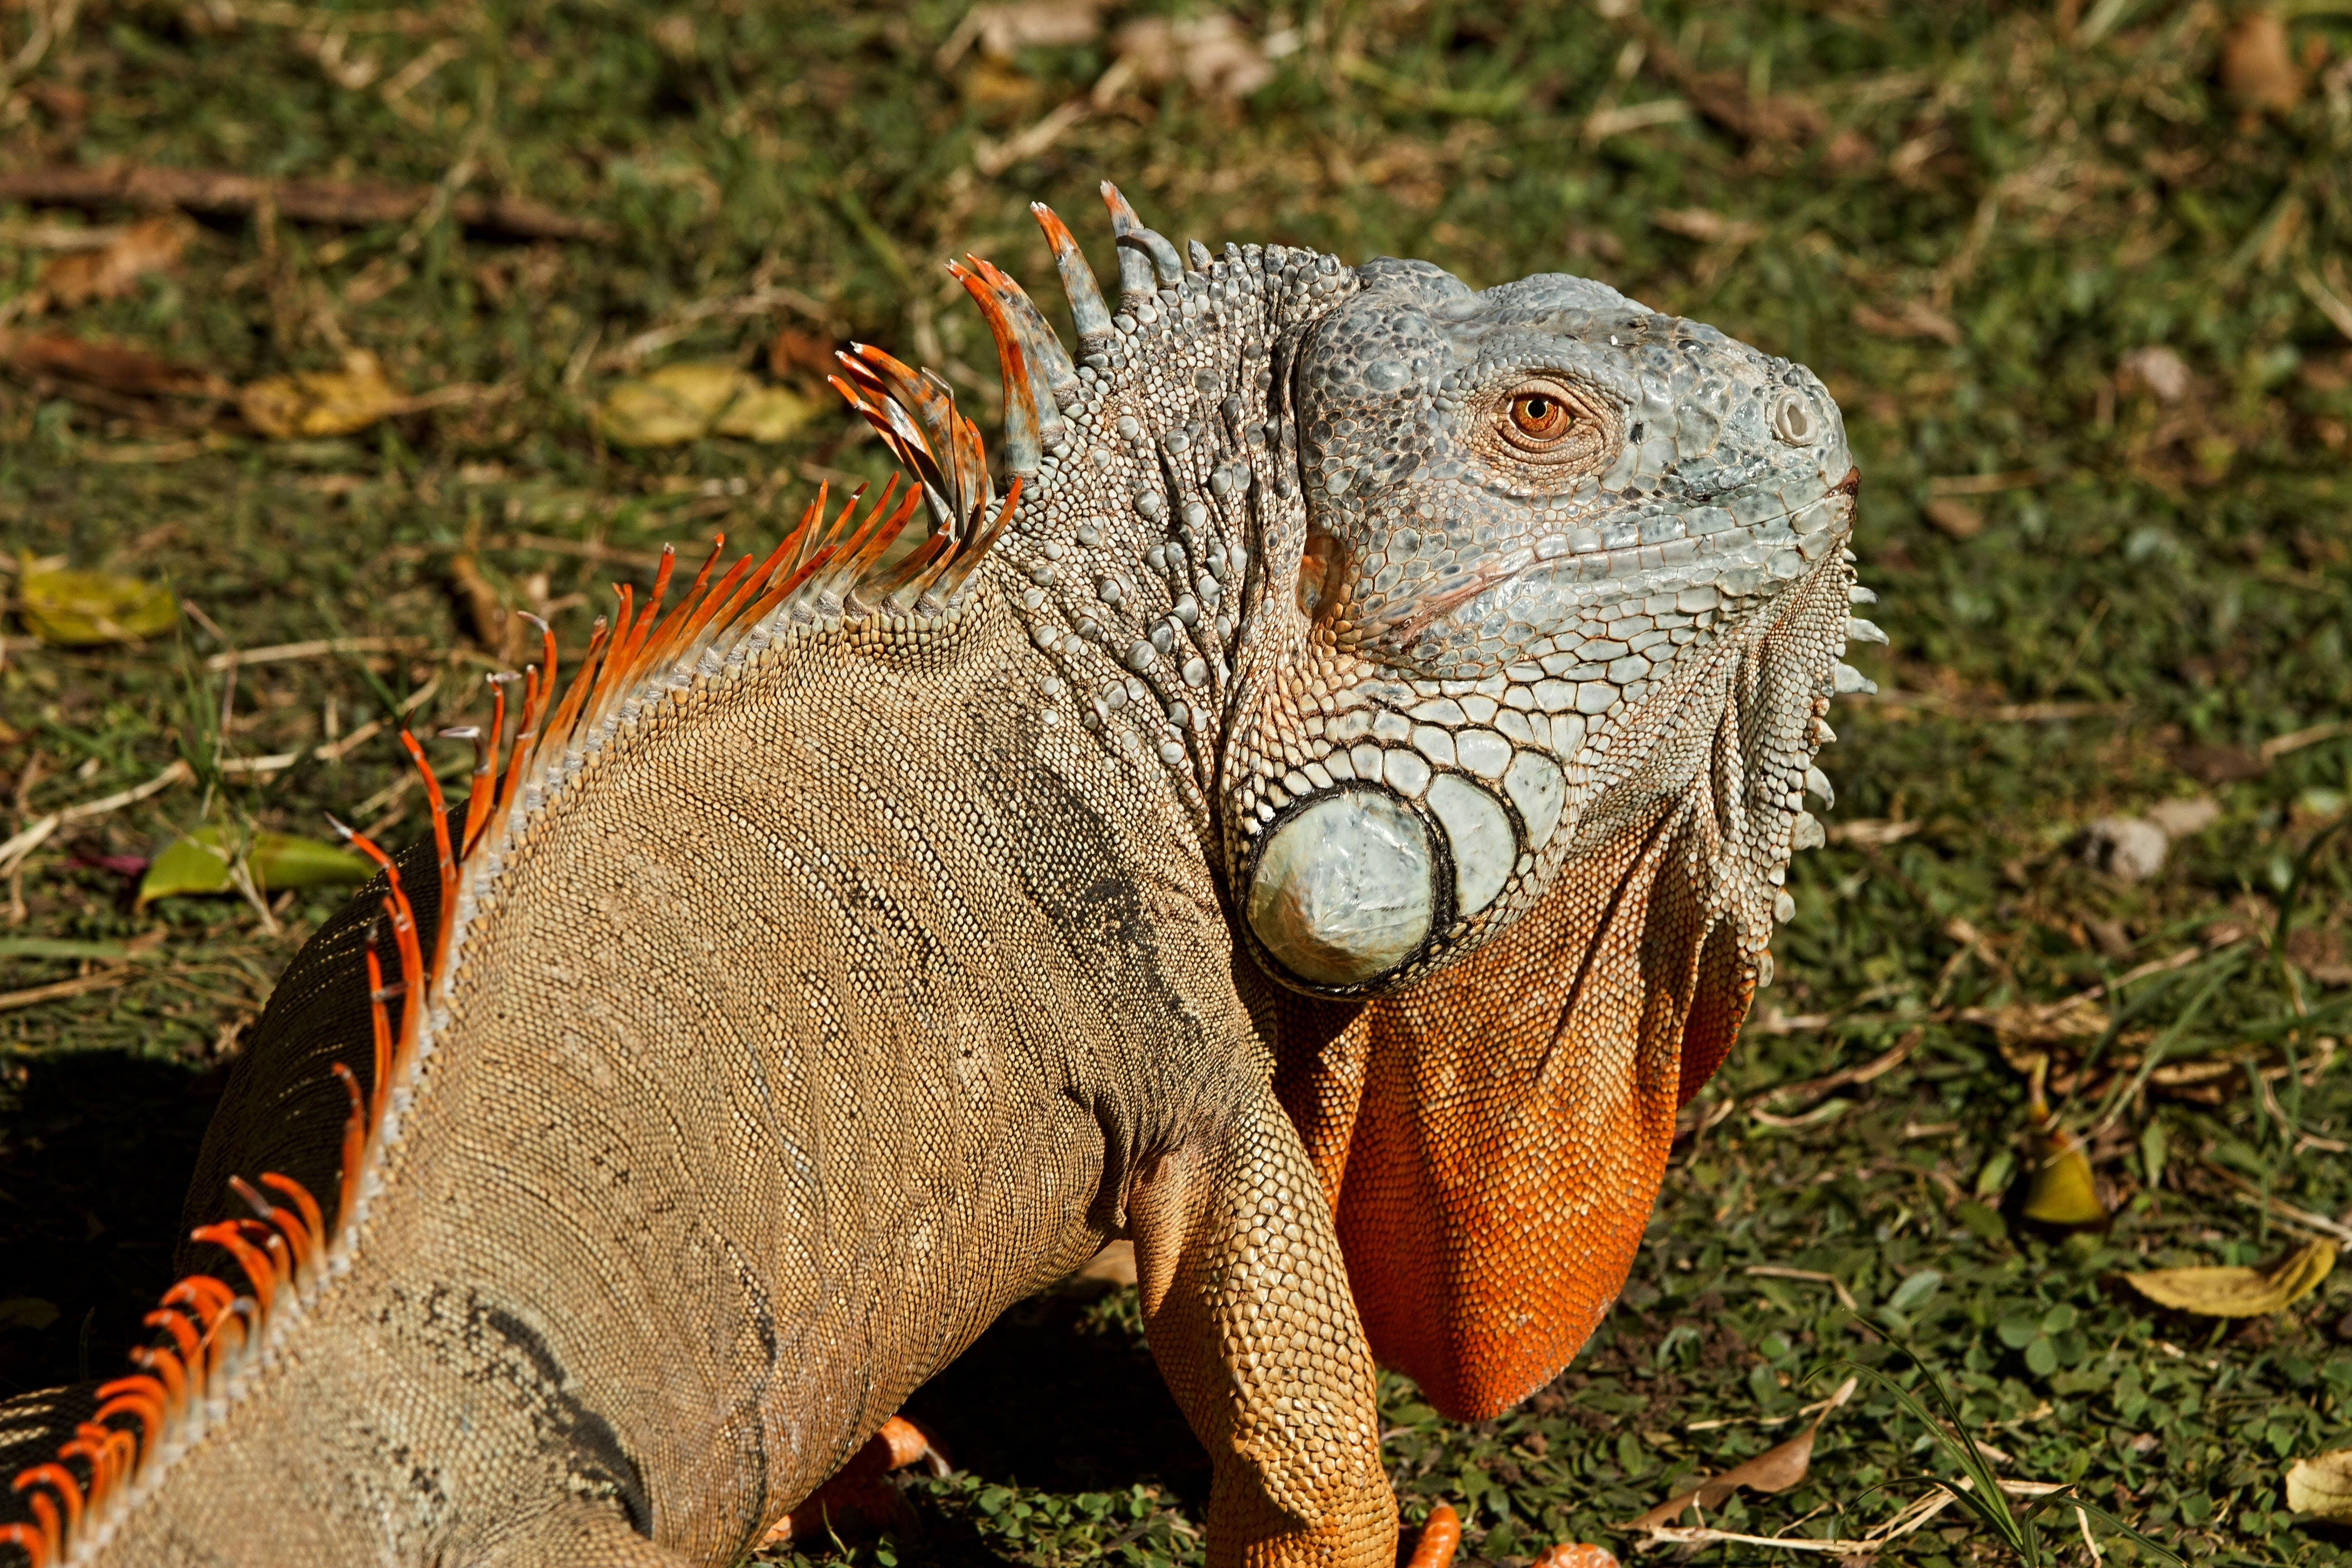 Orange Gray and Black Chameleon Standing on Green and Brown Grass during Daytime